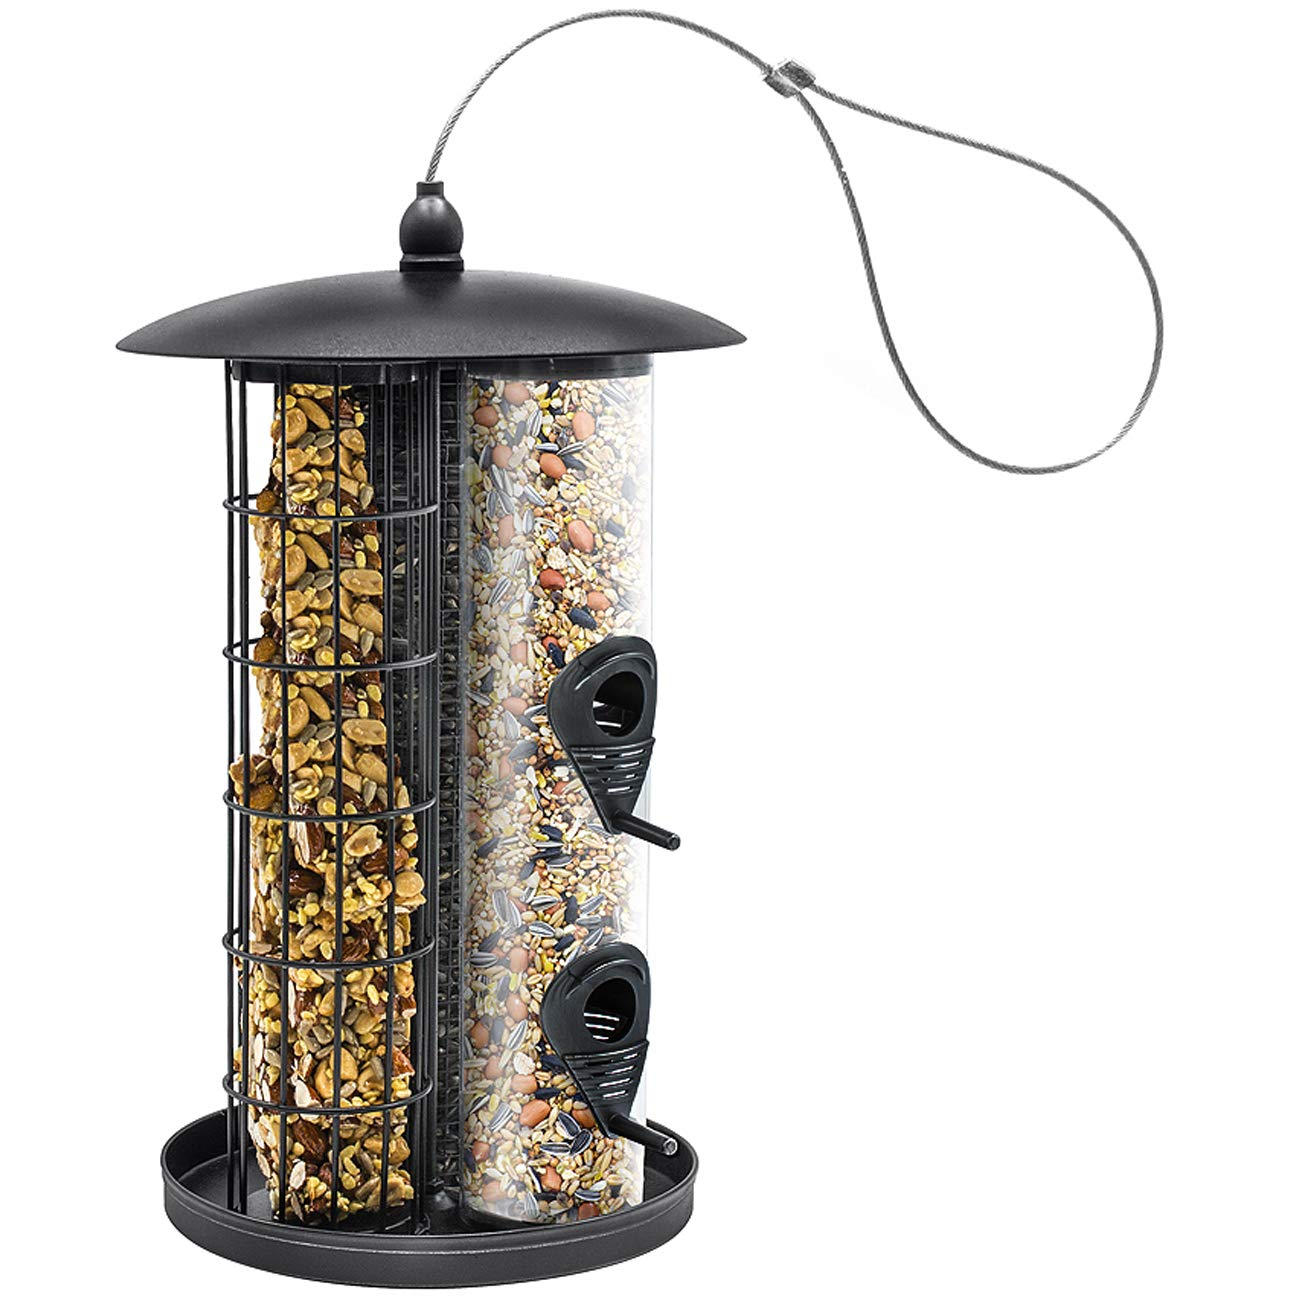 Sorbus Bird Feeder – Triple Tube Combination Hanging Feeder for Mixed Seed and More, Premium Iron Metal Design with Hanger, Great for Attracting Birds Outdoors, Backyard, Garden (Black)